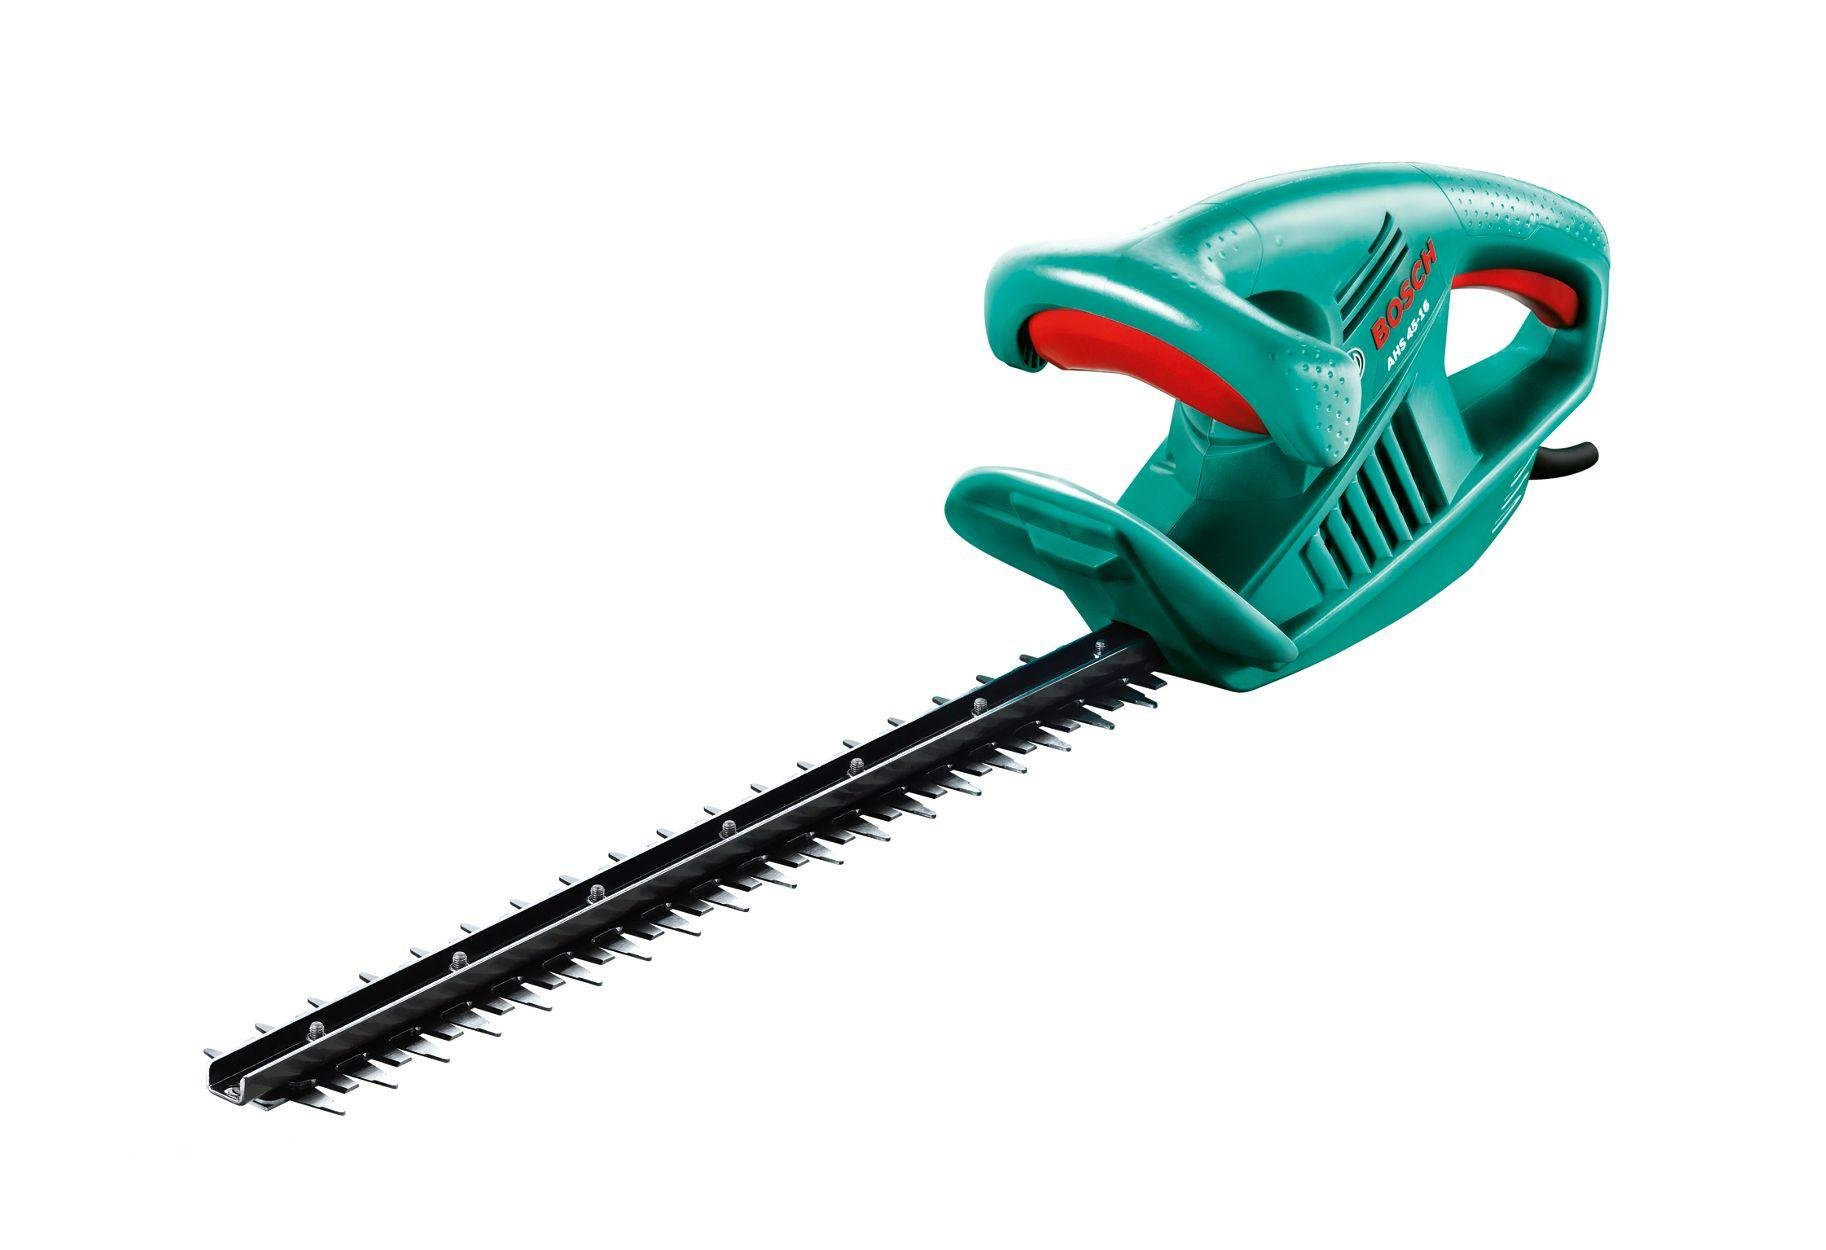 Bosch - AHS - 45-16 Electric - Corded - Hedge Trimmer - 420W at Argos from Bosch